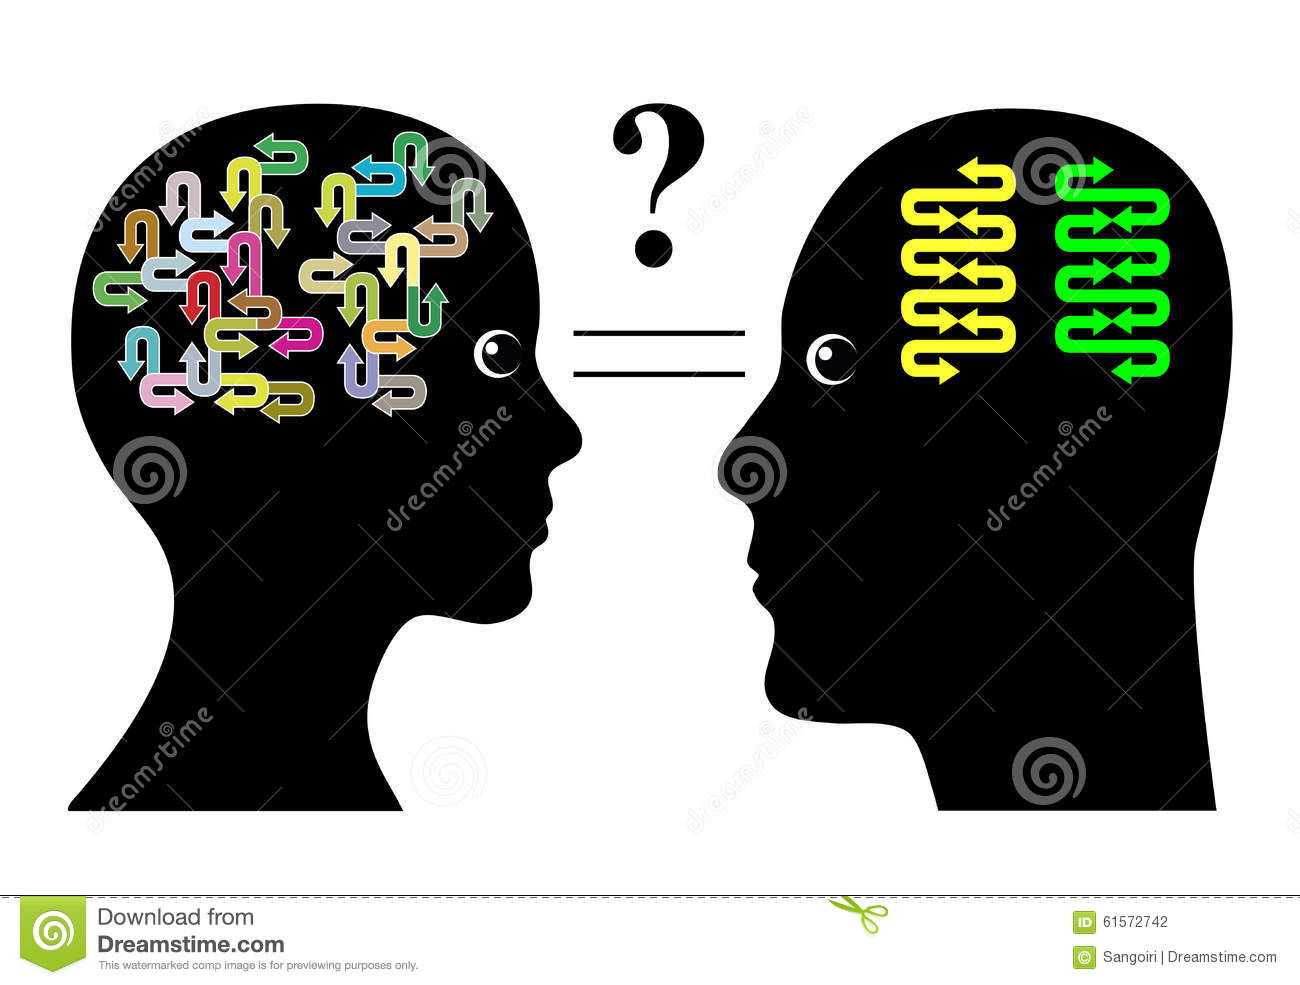 Brain Differences Stock Illustration - Image: 61572742